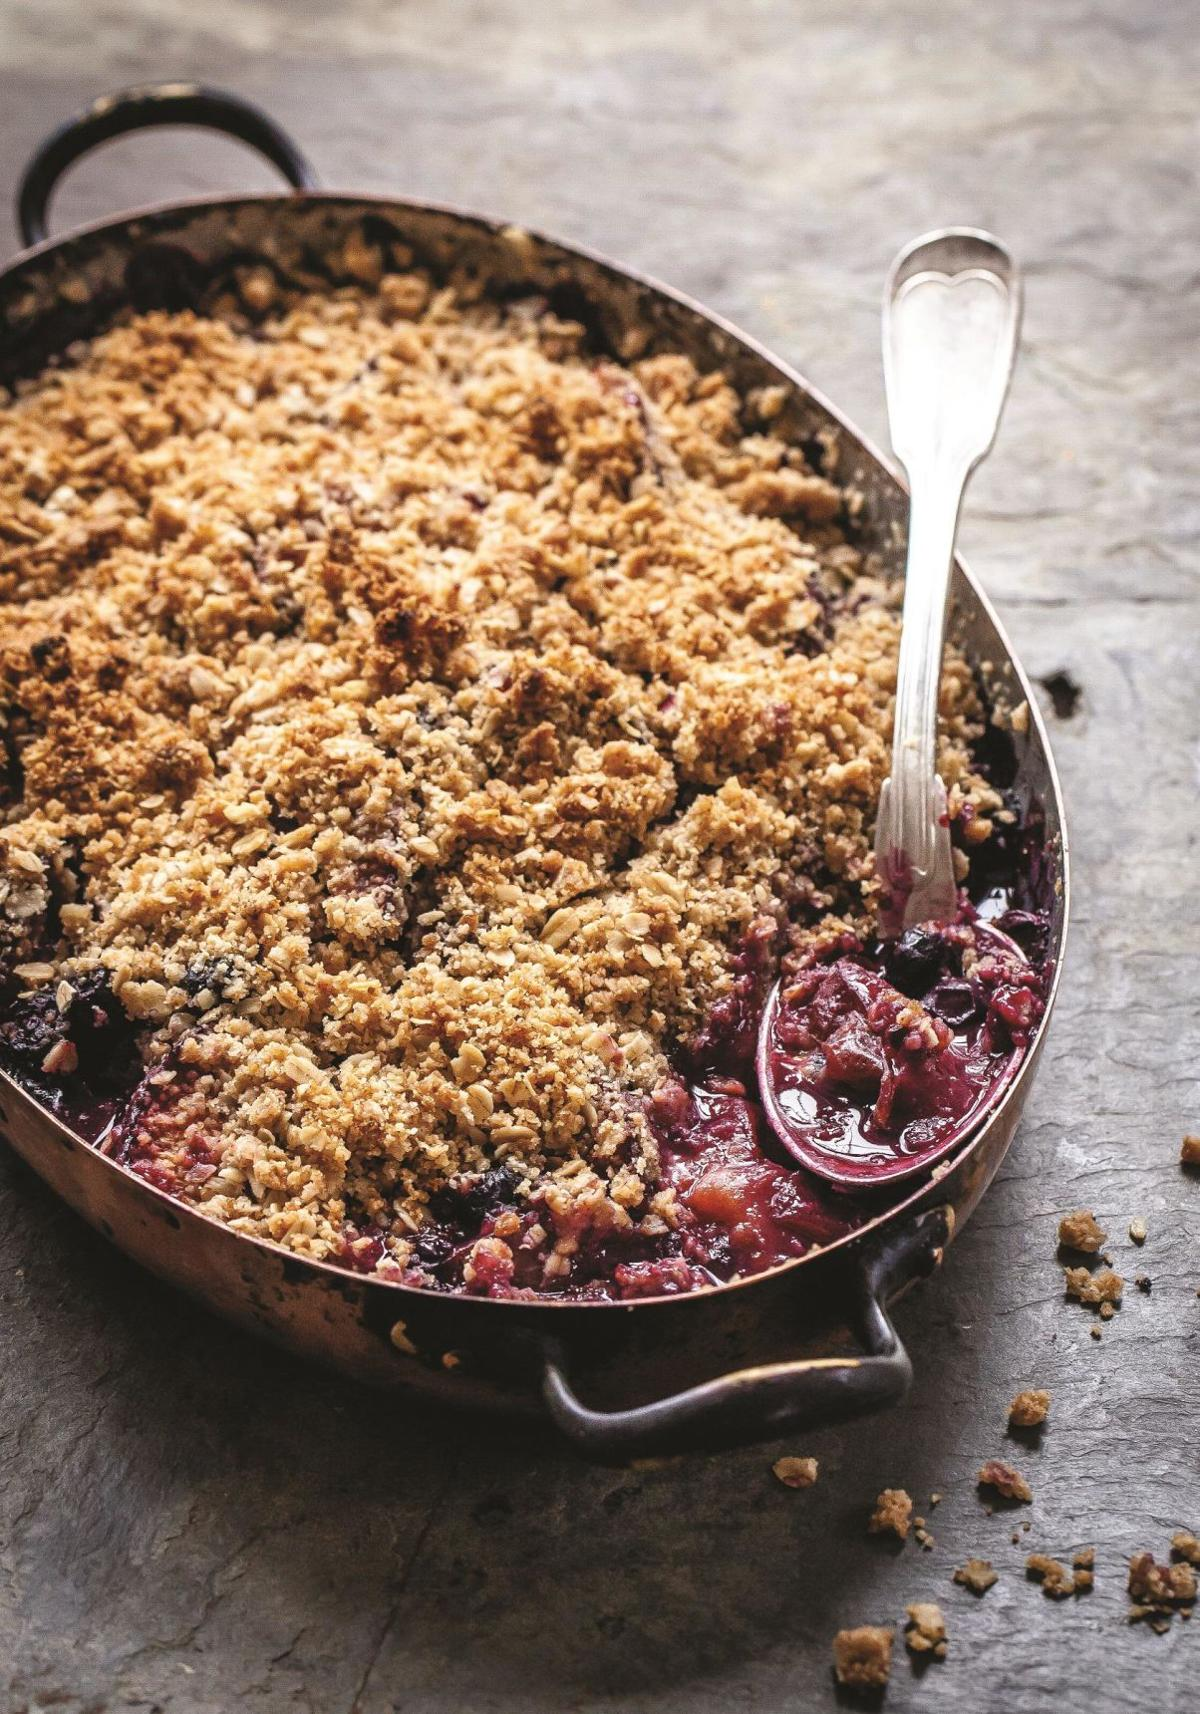 In sweet or savory dishes, or just as a snack, blueberries are a year-round delight